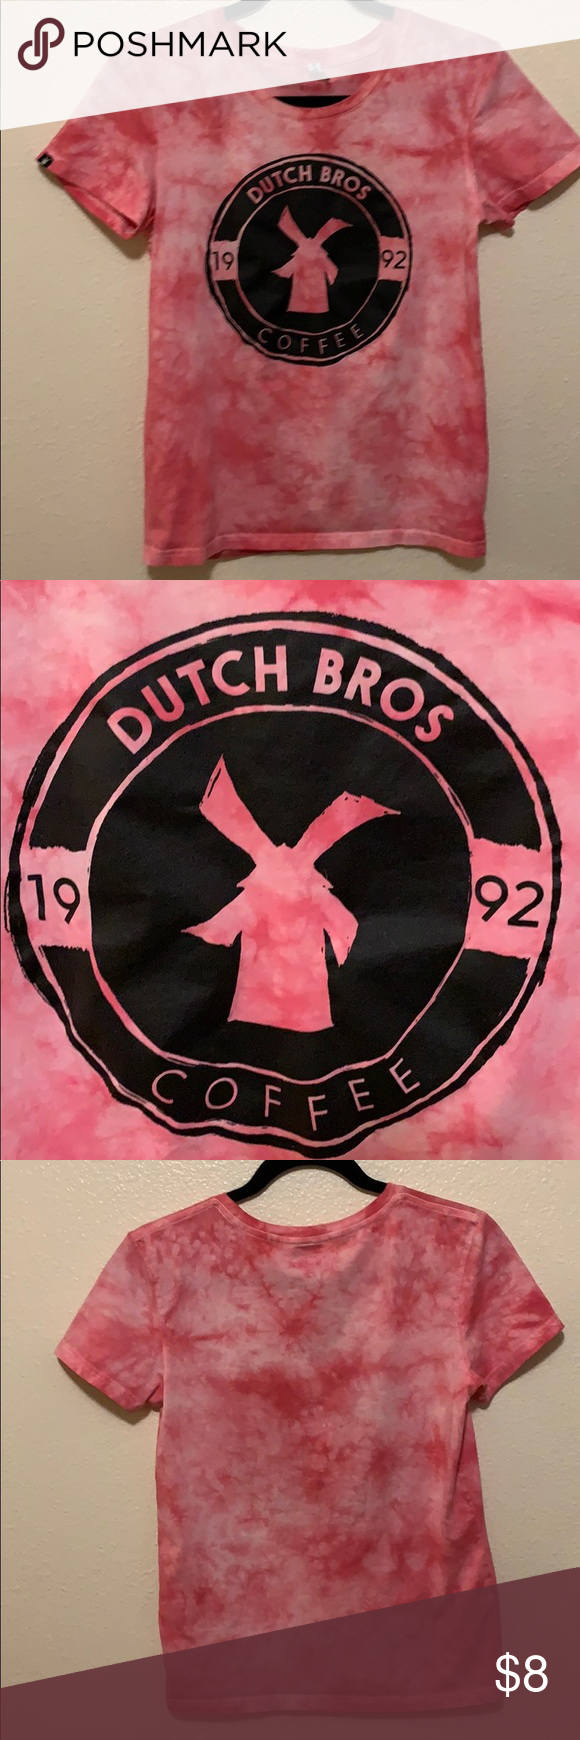 Women's Dutch Bros pink the dye T-Shirt #dutchbros I just added this listing on Poshmark: Women's Dutch Bros pink the dye T-Shirt. #shopmycloset #poshmark #fashion #shopping #style #forsale #Dutch Bros #Tops #dutchbros